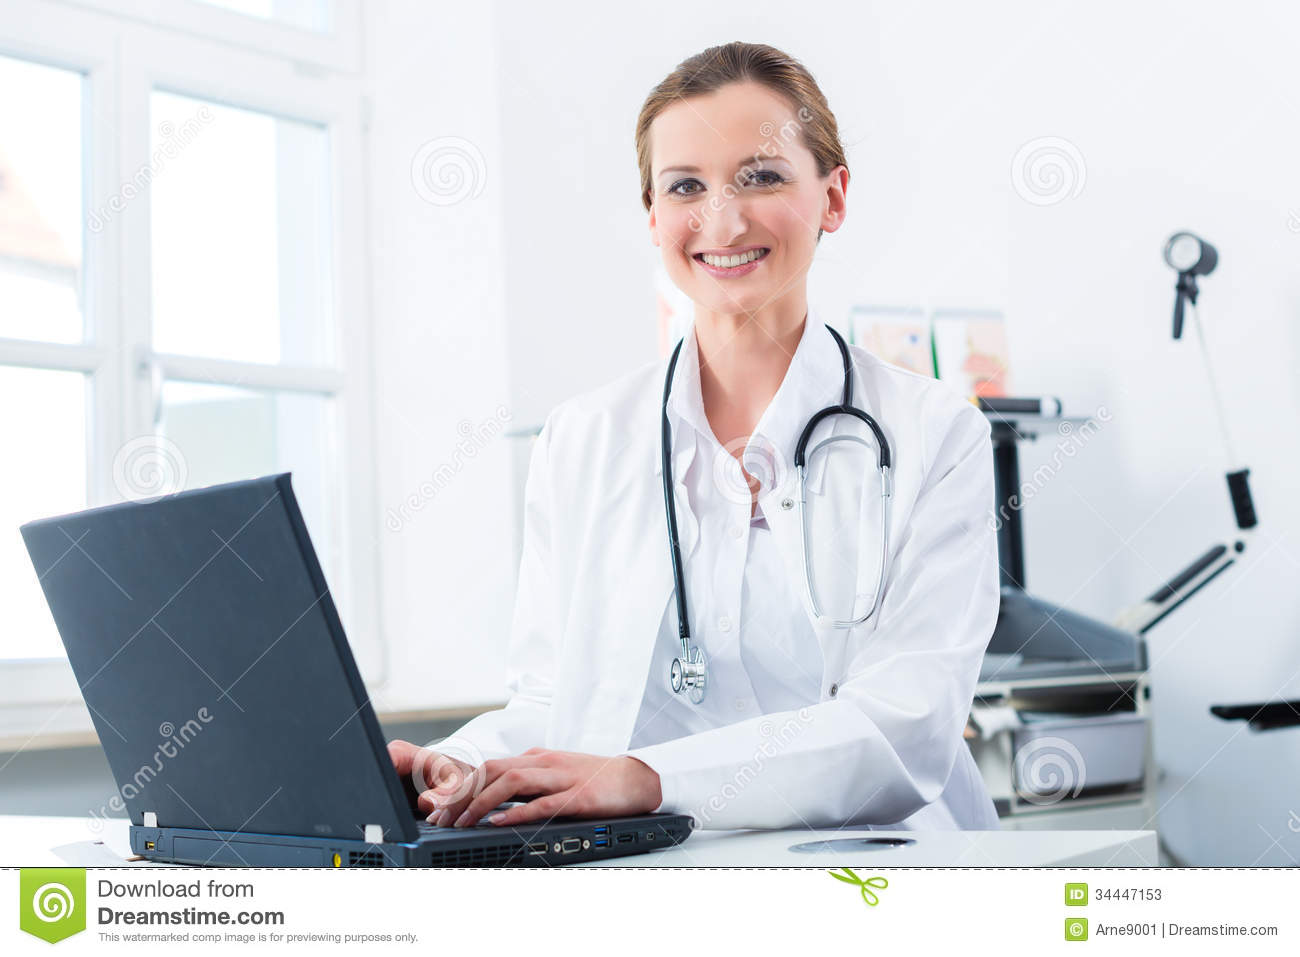 write essay about doctor Essay writing software including essay generator, essay writer, auto essay rewriter, reference generator, research assistant and more.